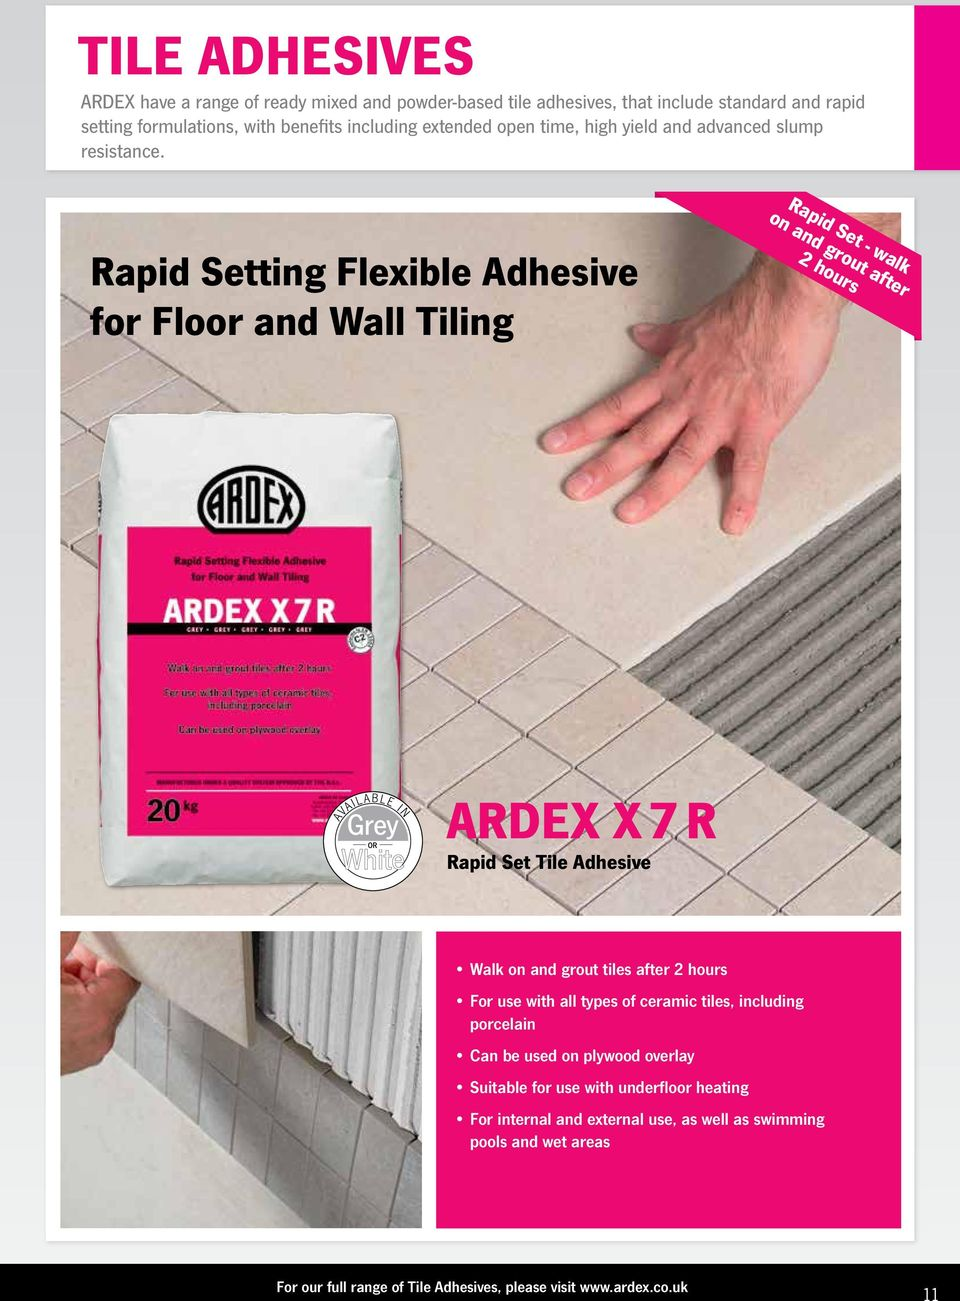 Rapid Setting Flexible Adhesive for Floor and Wall Tiling Rapid Set - walk on and grout after 2 hours ARDEX X 7 R Rapid Set Tile Adhesive Walk on and grout tiles after